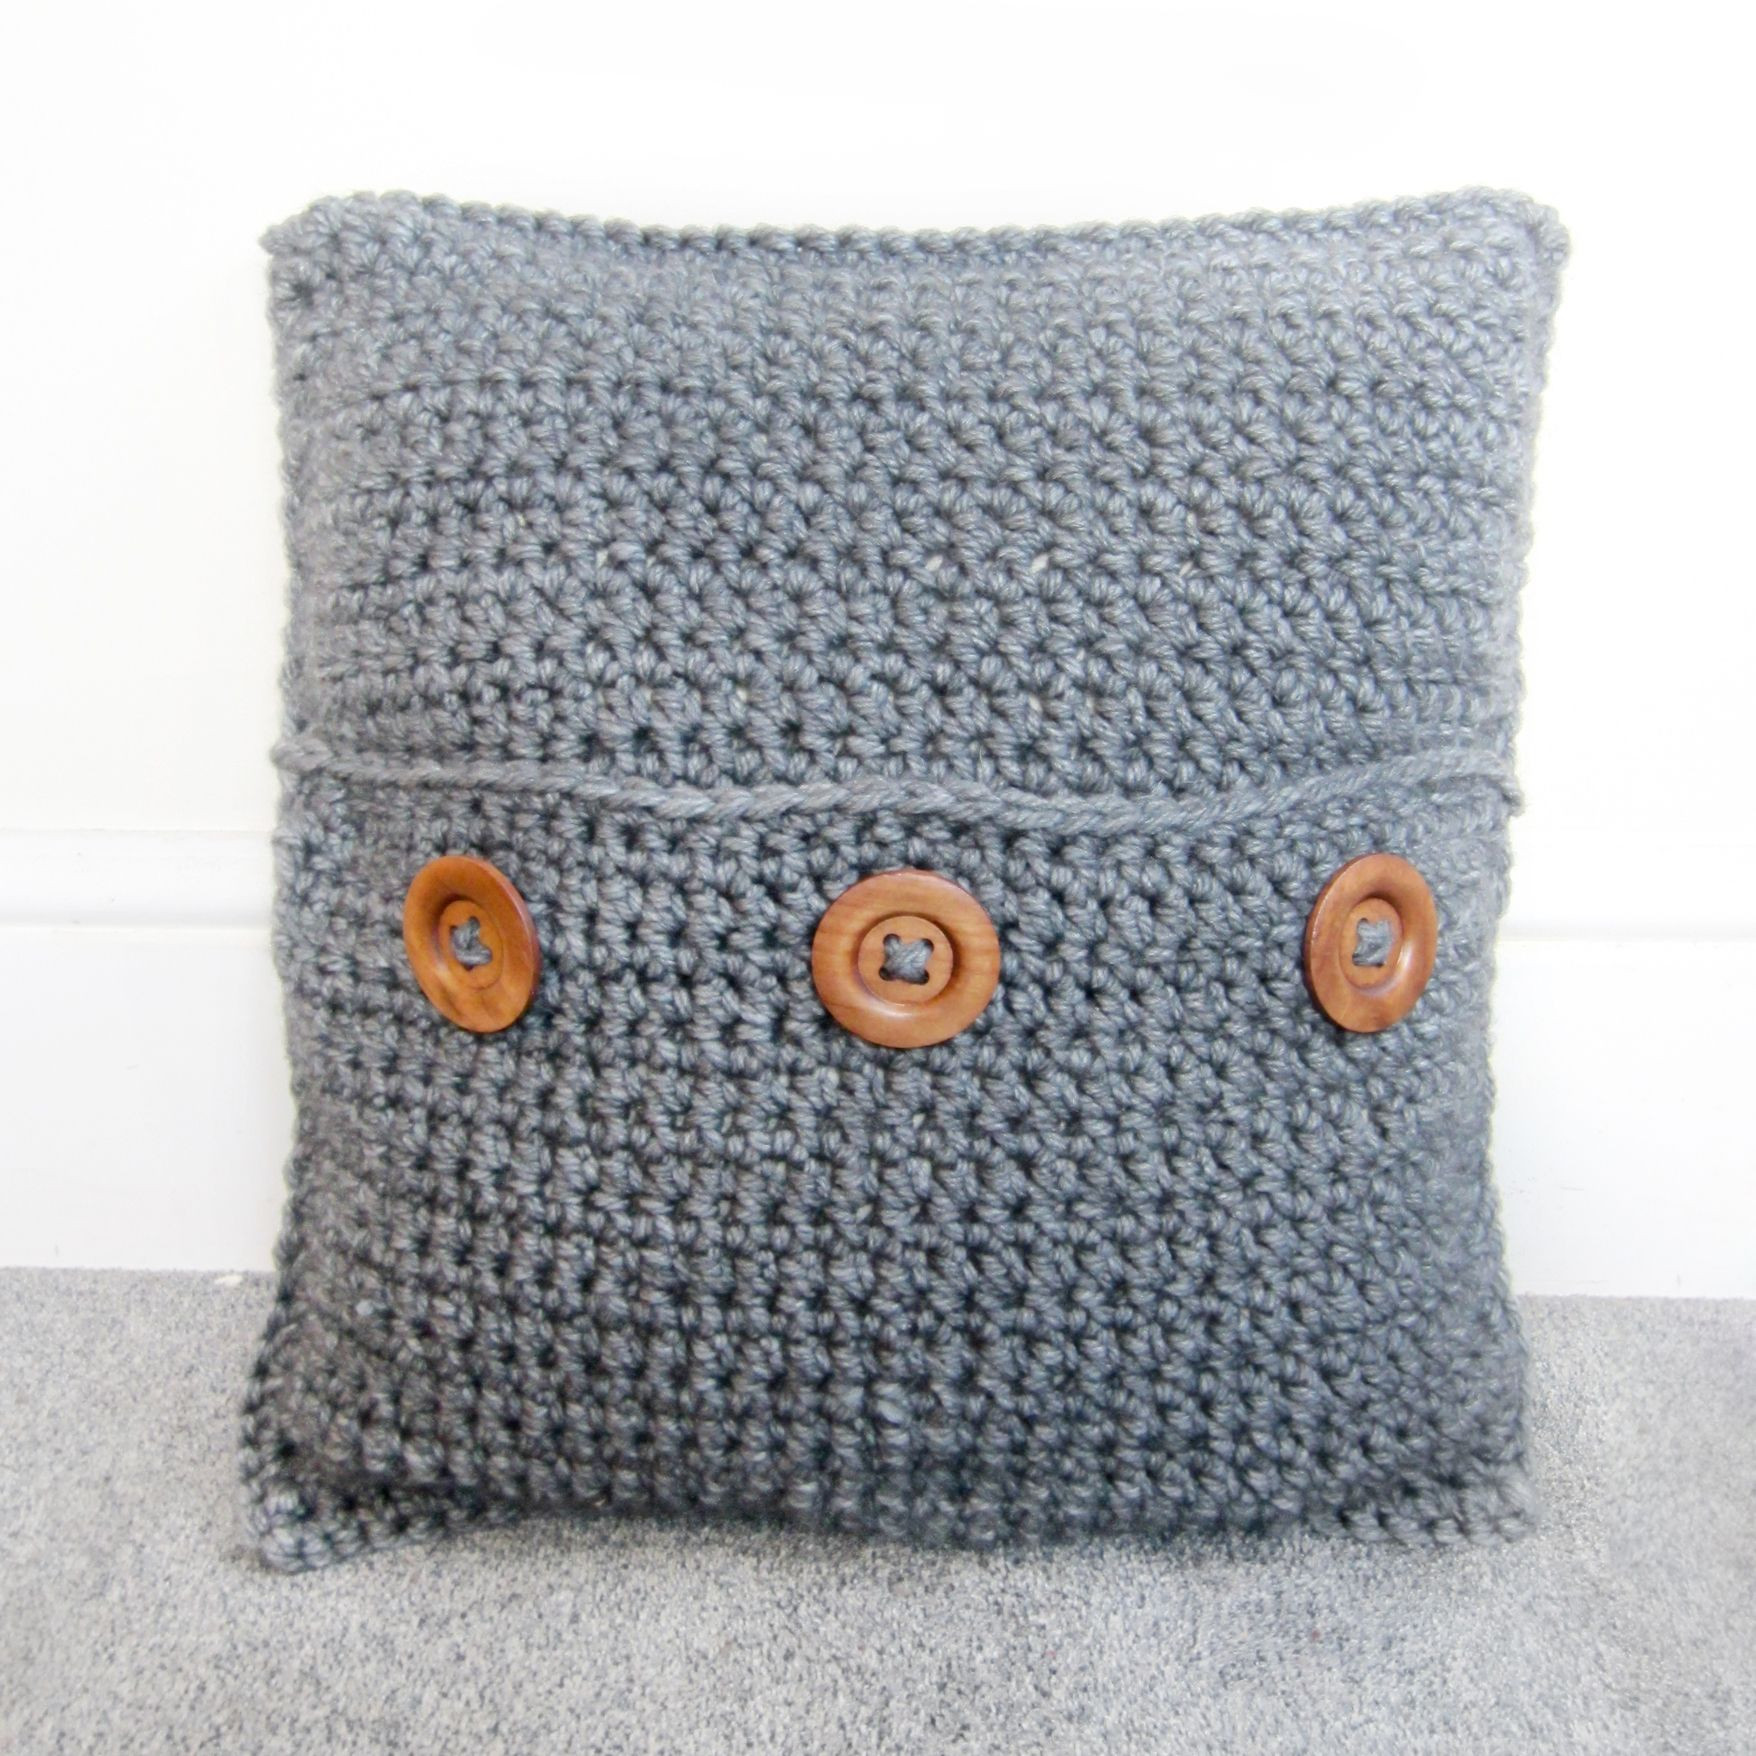 Lovely Chunky Crochet Cushion Fittex Bil Google Crochet Pillow Covers Of Incredible 47 Pics Crochet Pillow Covers